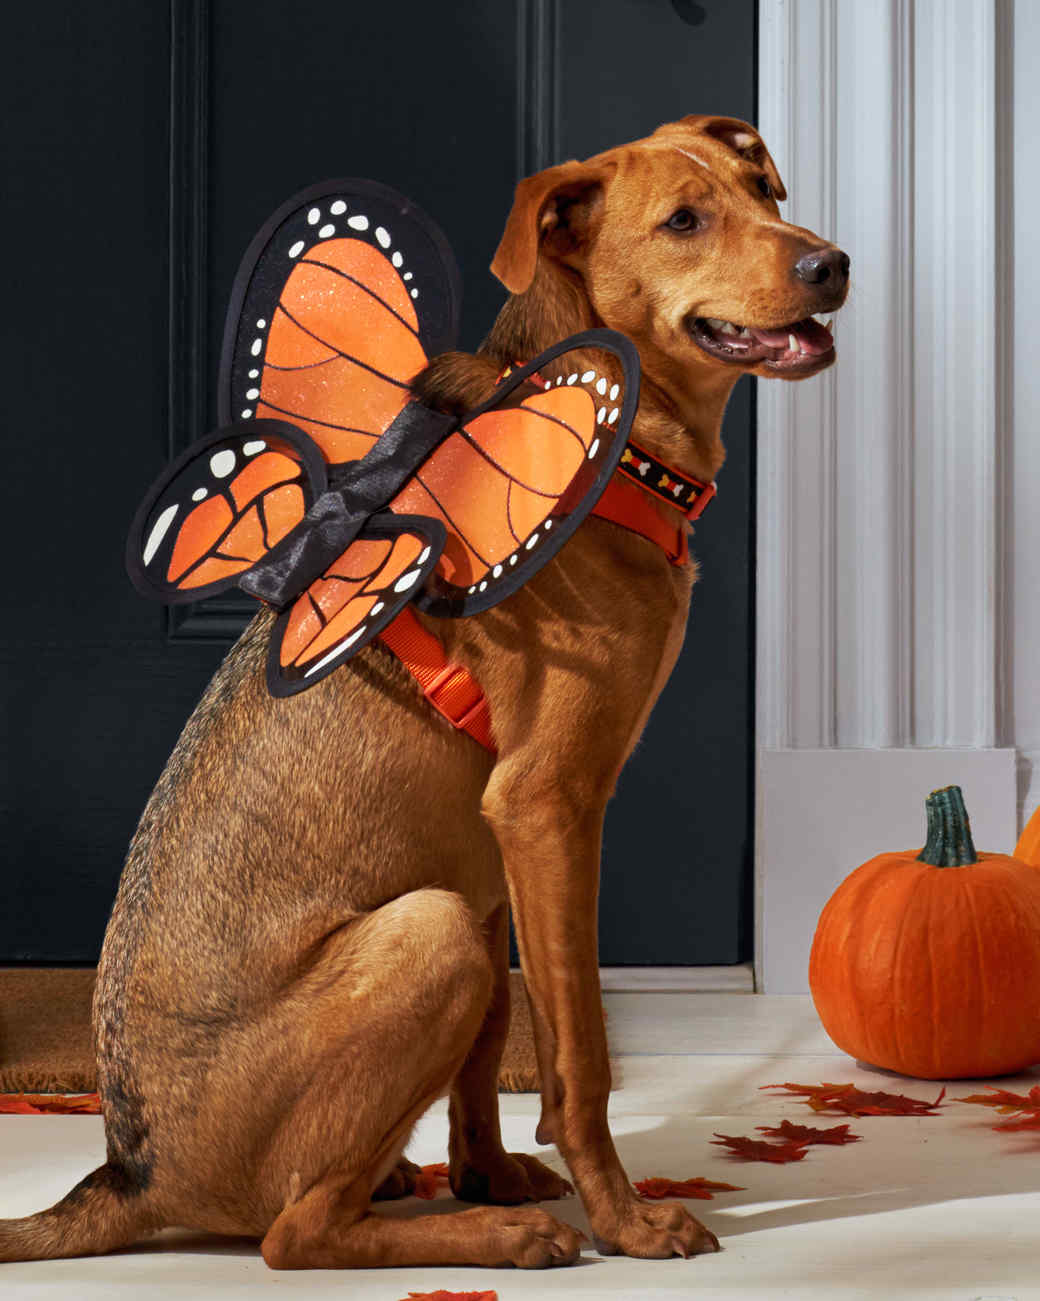 mspets-dog-halloween-butterflyharness-d112236-mrkt-0915.jpg